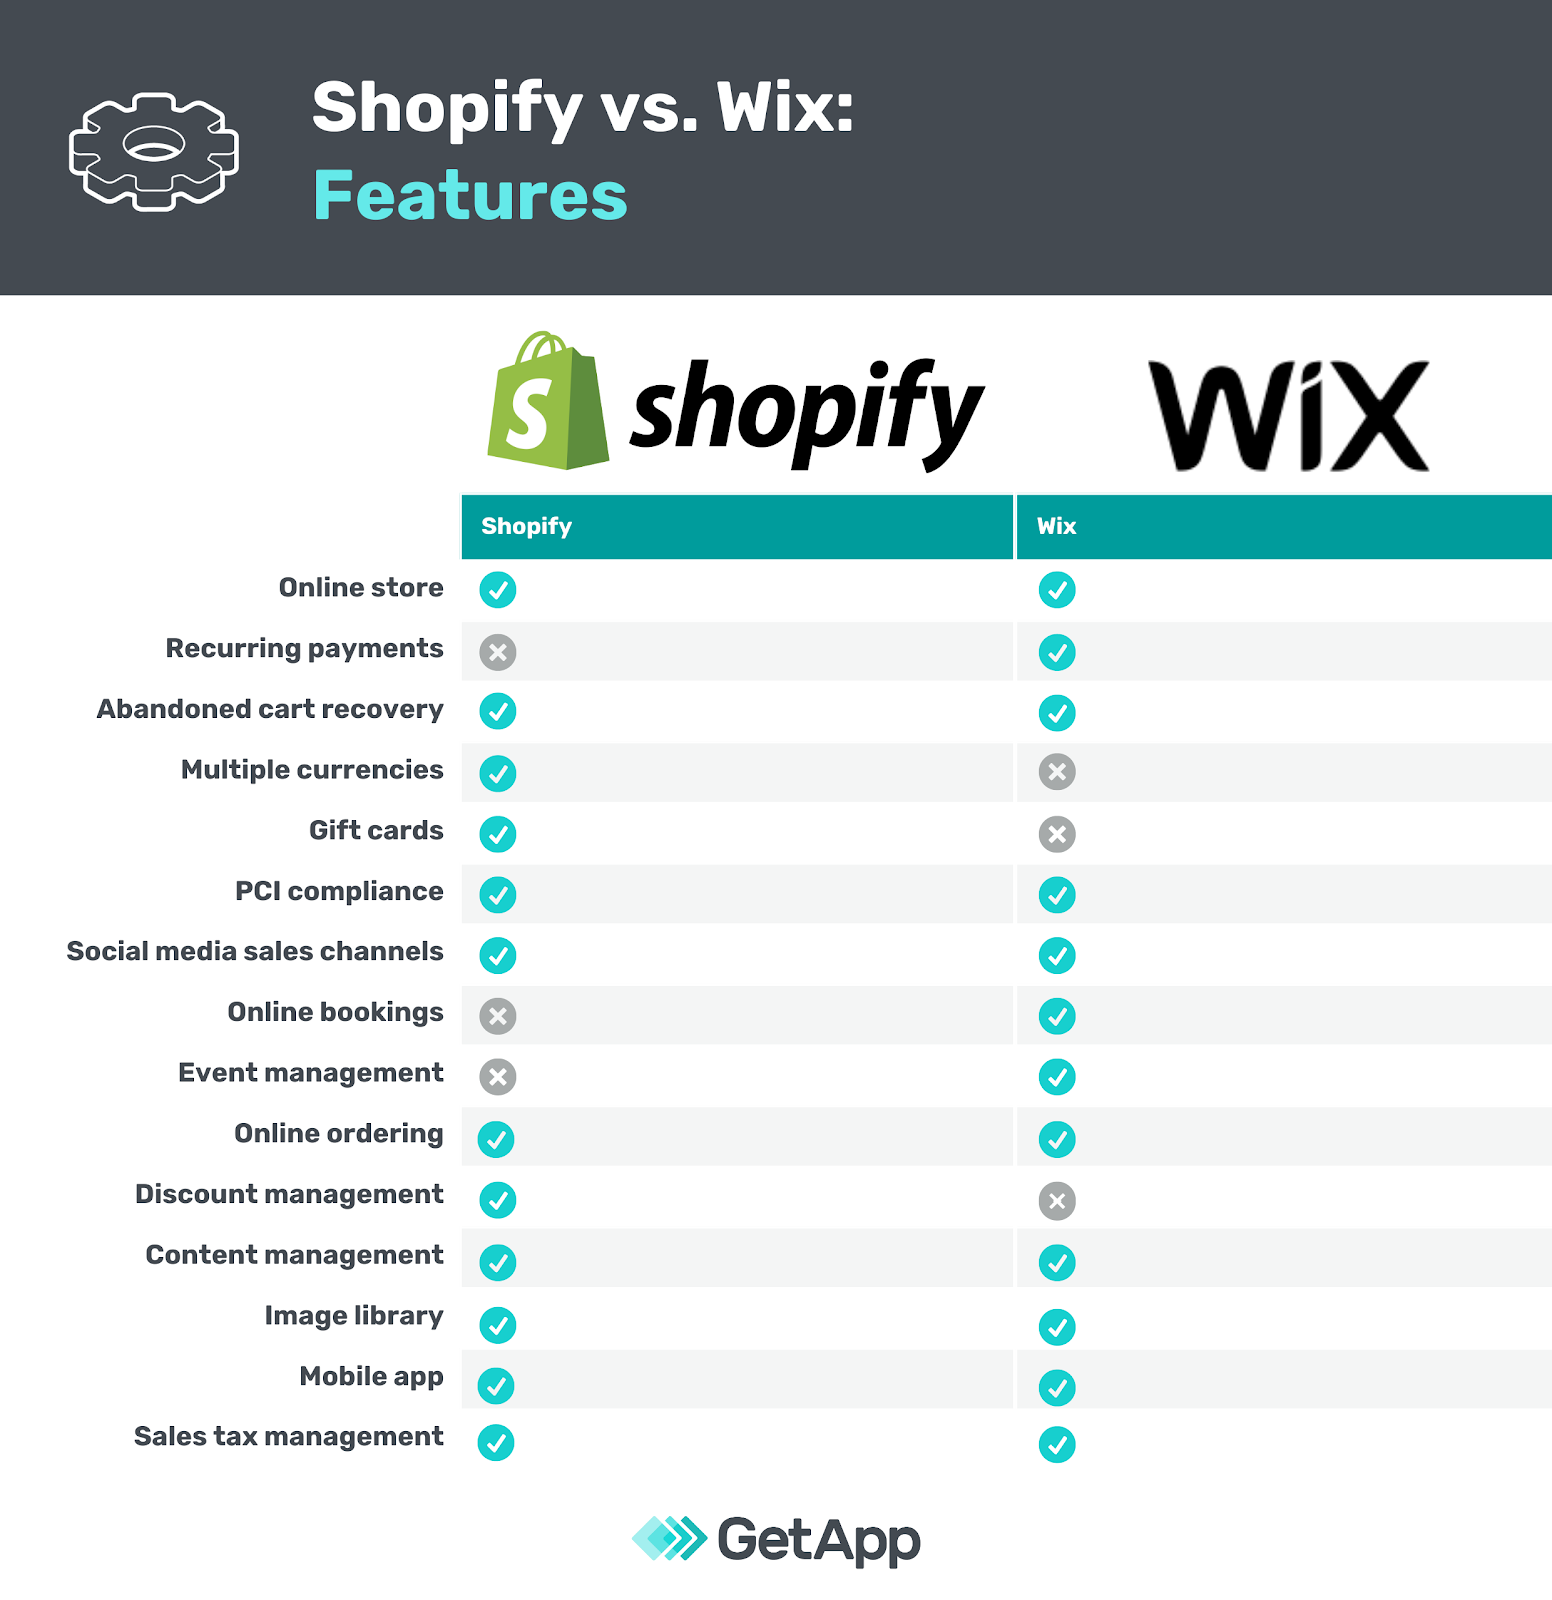 Shopify vs. Wix infographic